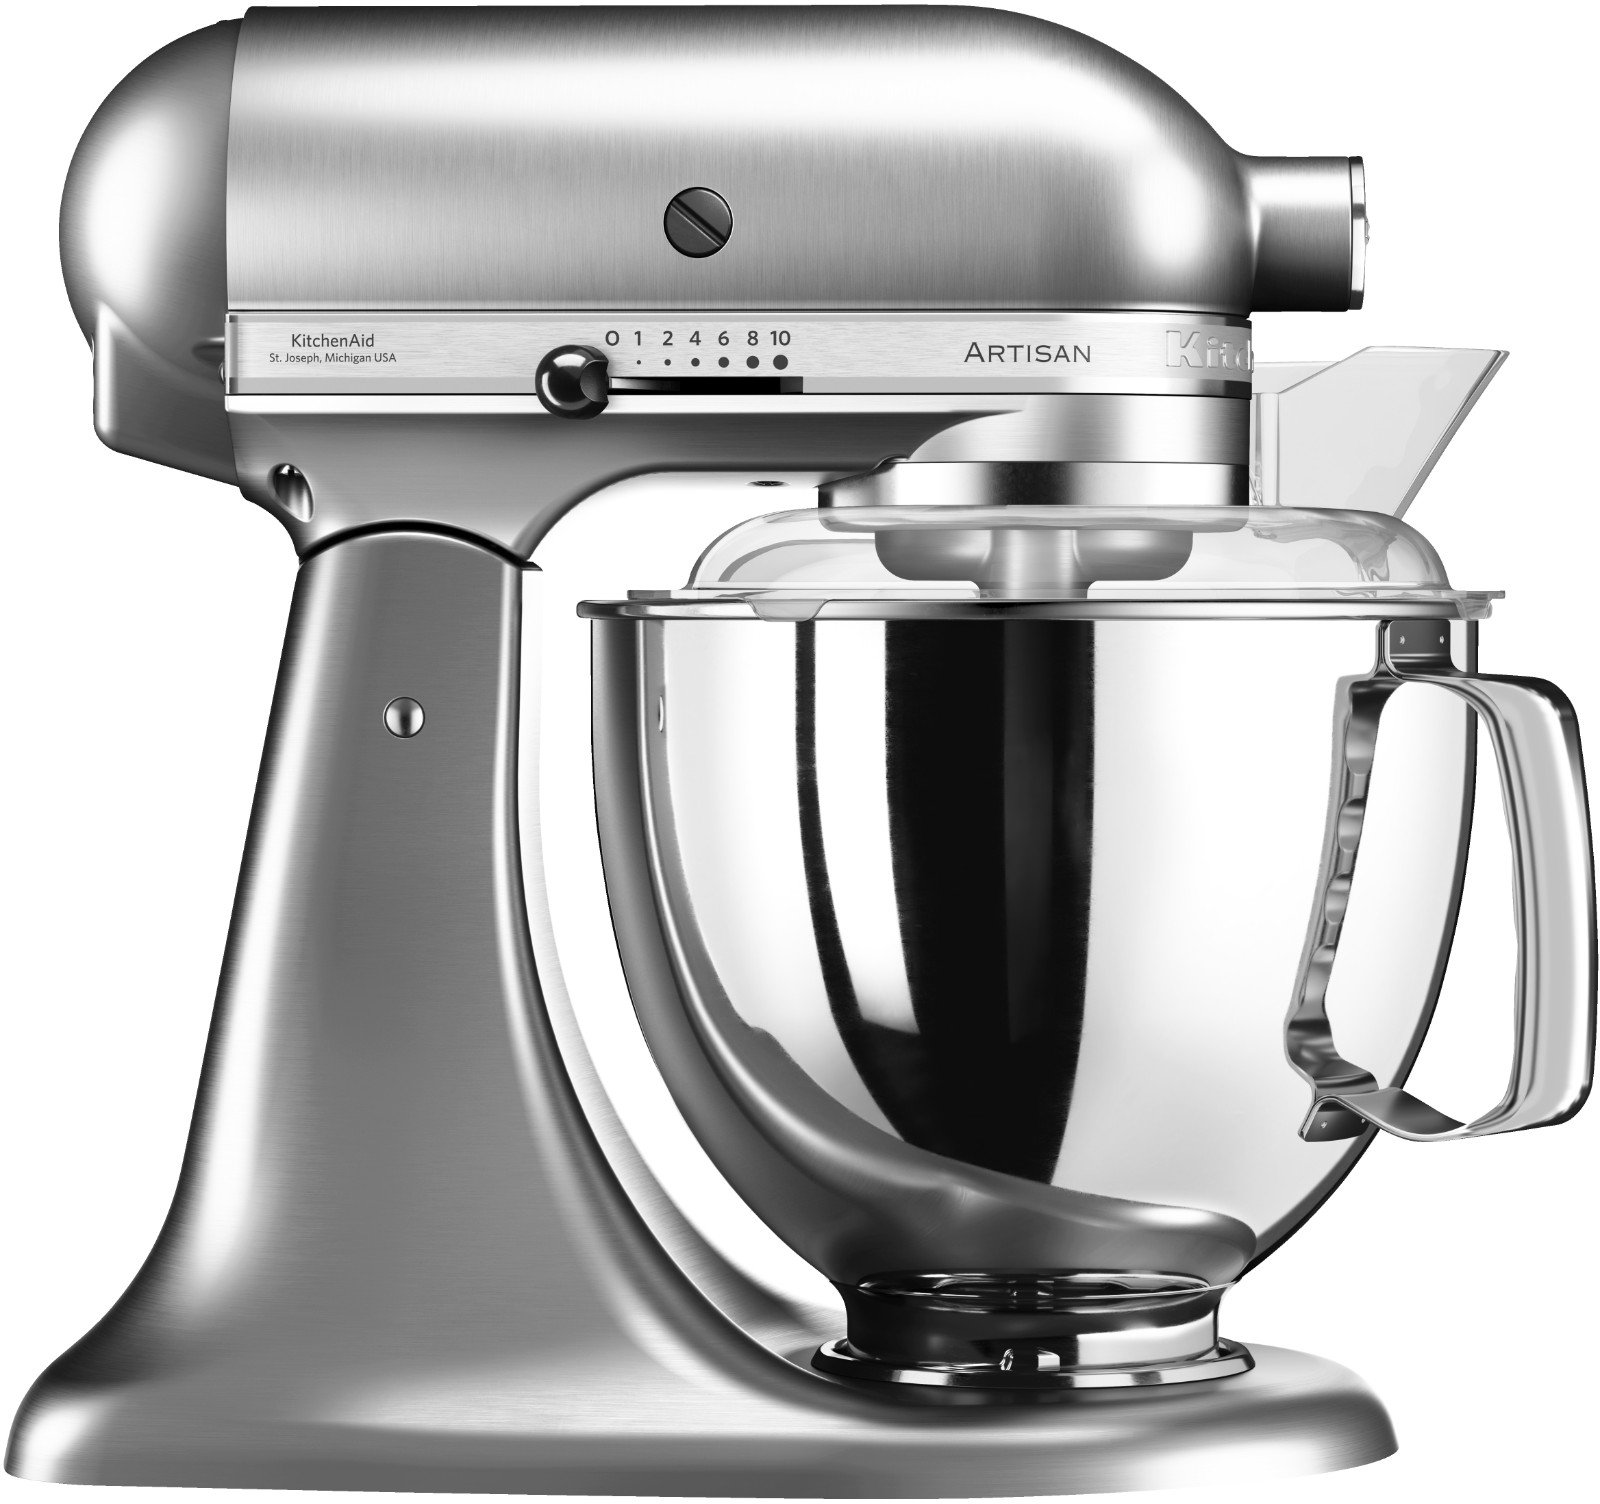 Kitchenaid Küchenmaschine Idealo Kitchenaid Artisan 5ksm175ps